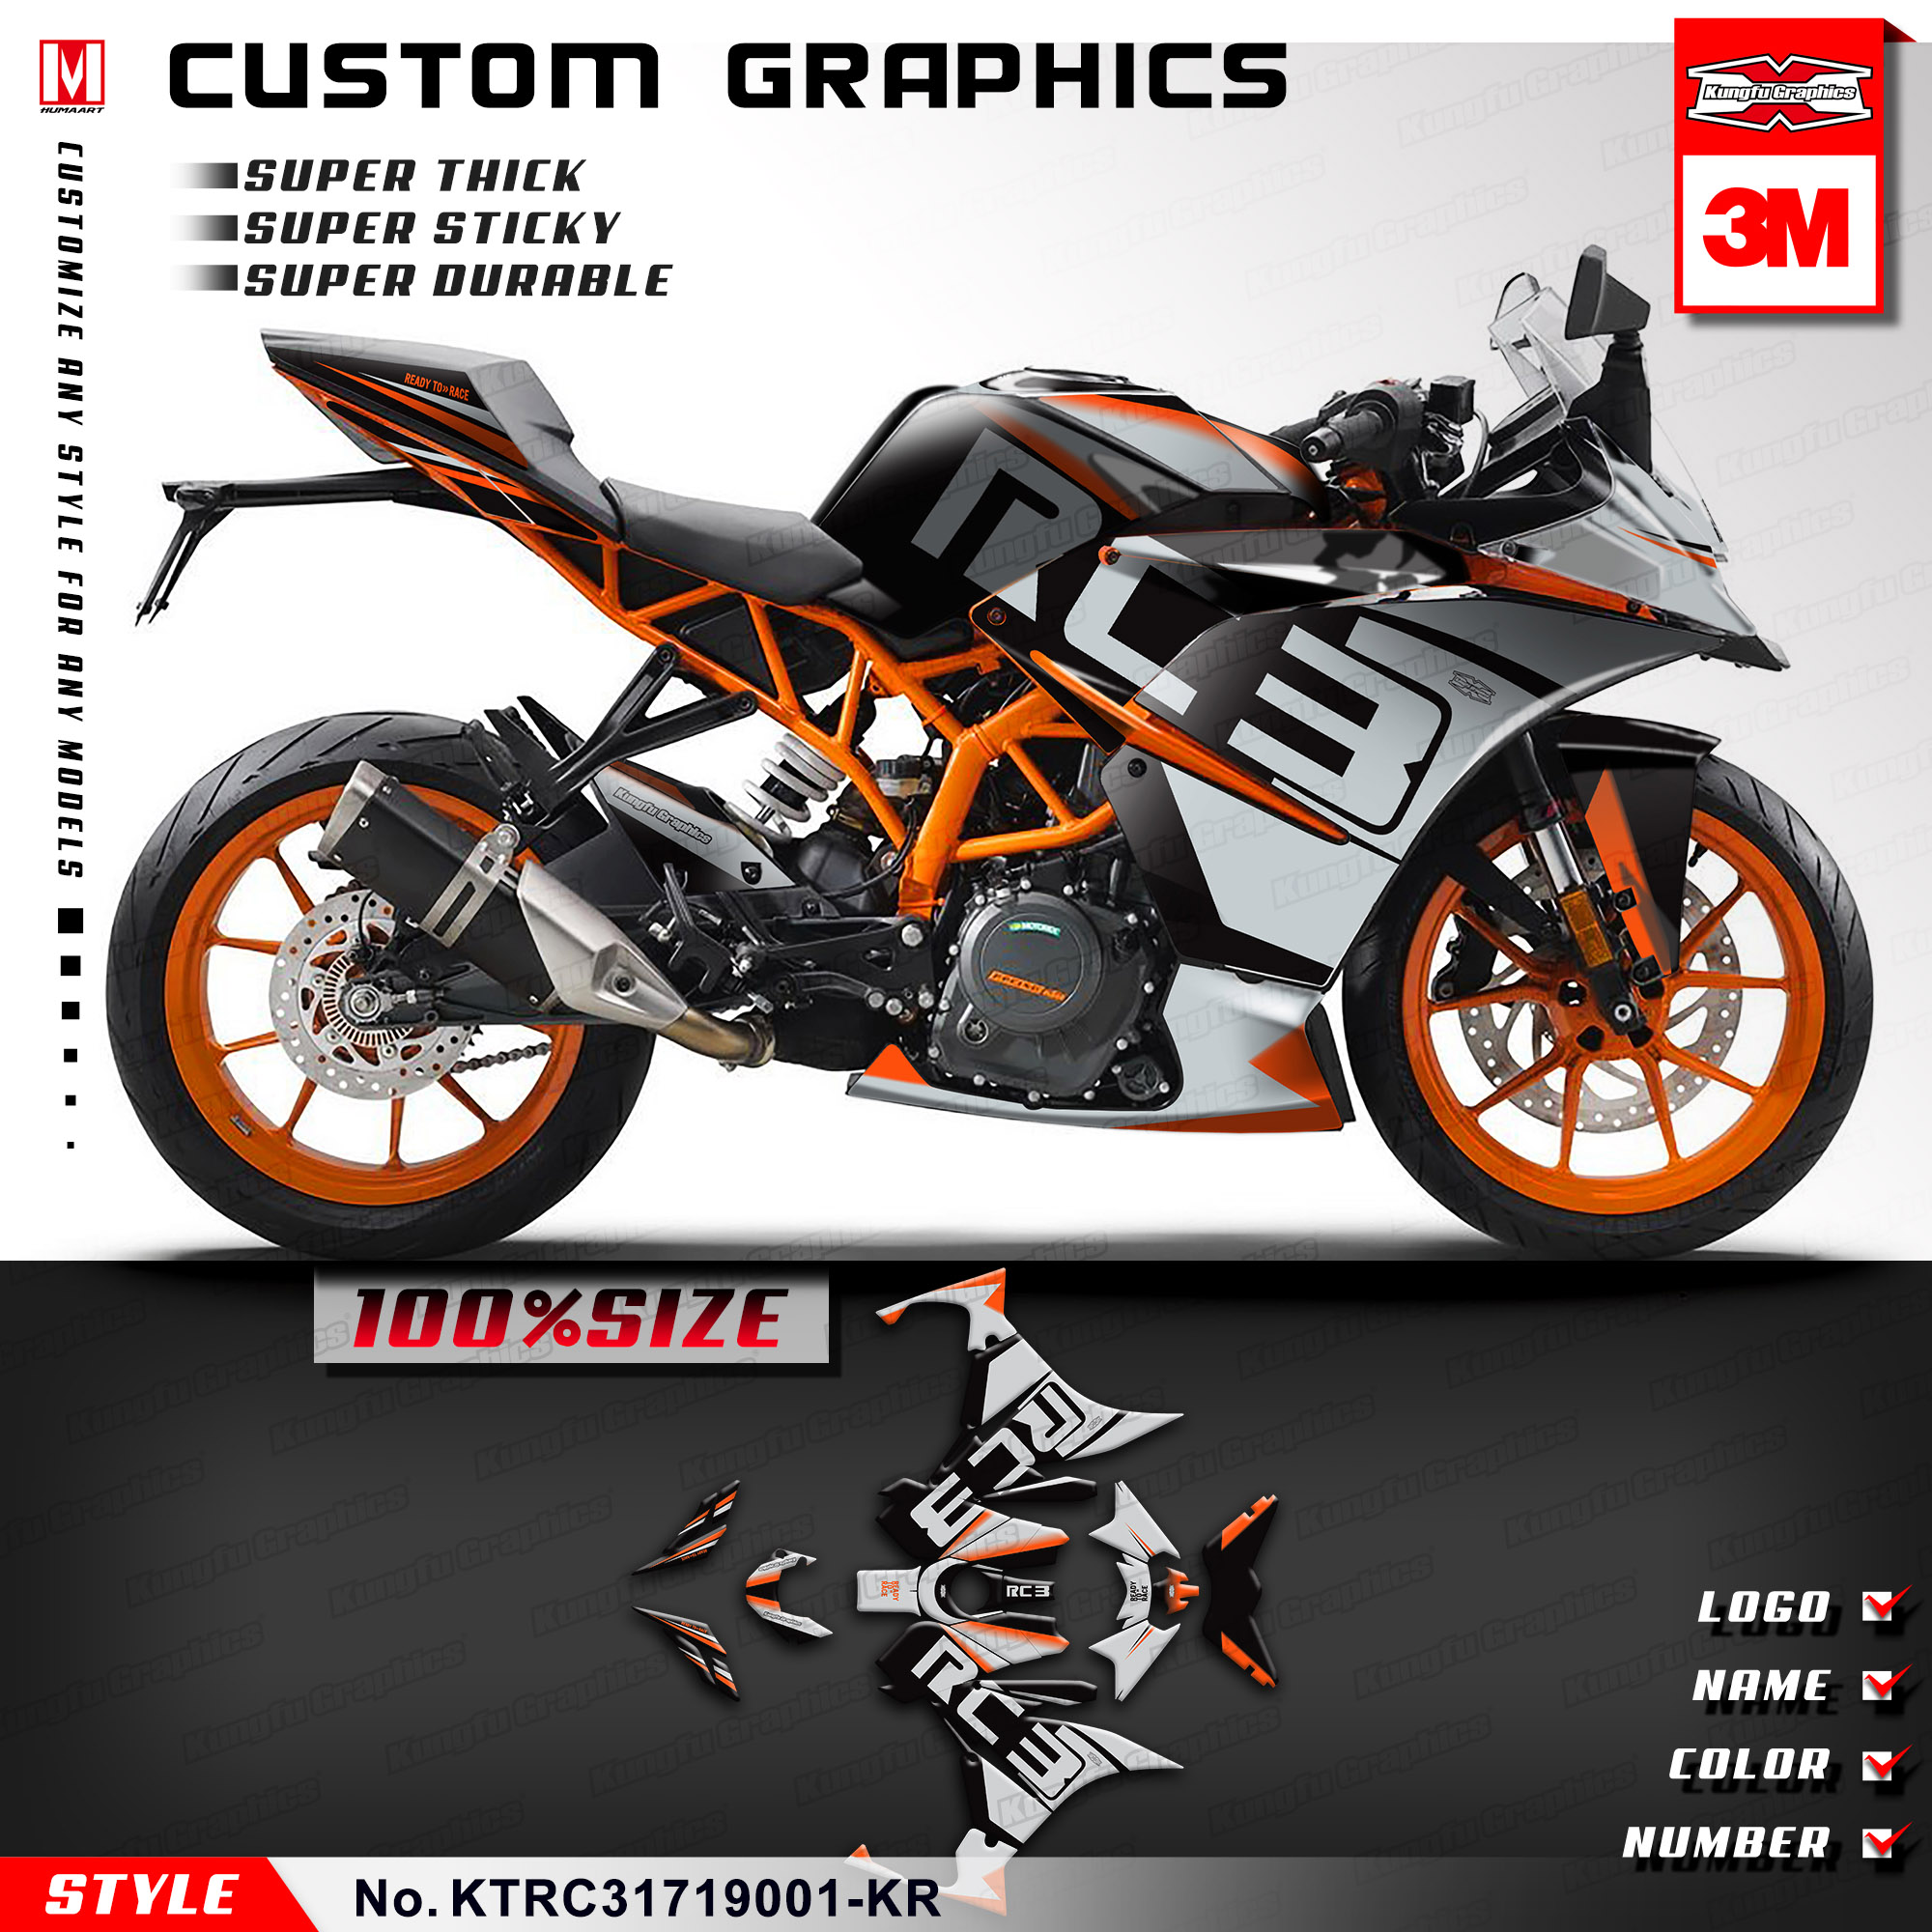 CUSTOM 2 COLOR NAME MOTORCYLE NUMBER PLATE RACING DECALS BIKE GRAPHIC STICKERS